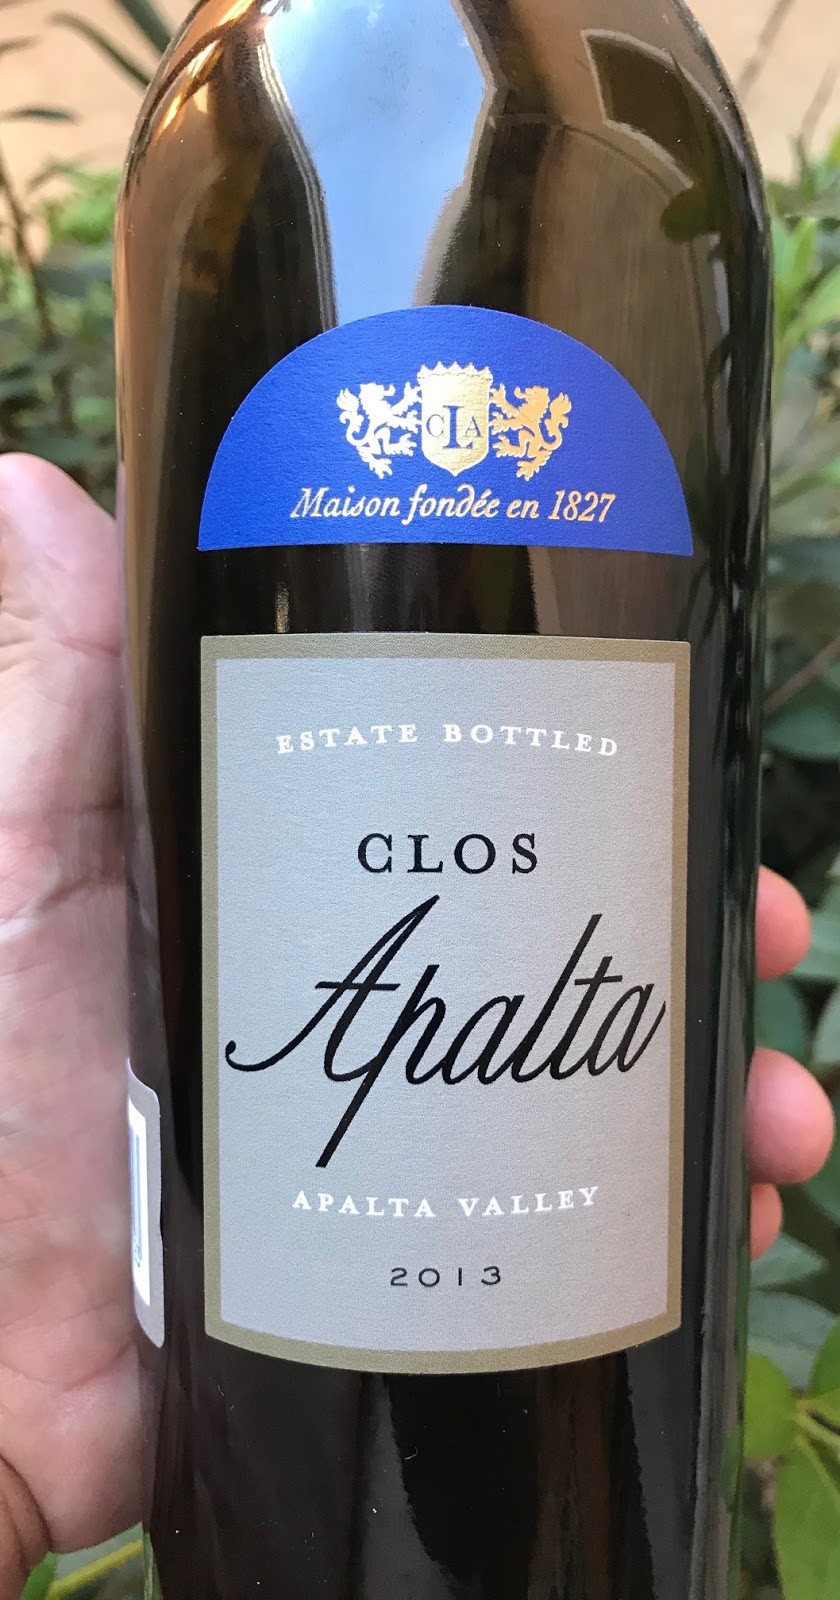 Clos Apalta 2013 - A 100 point wine!